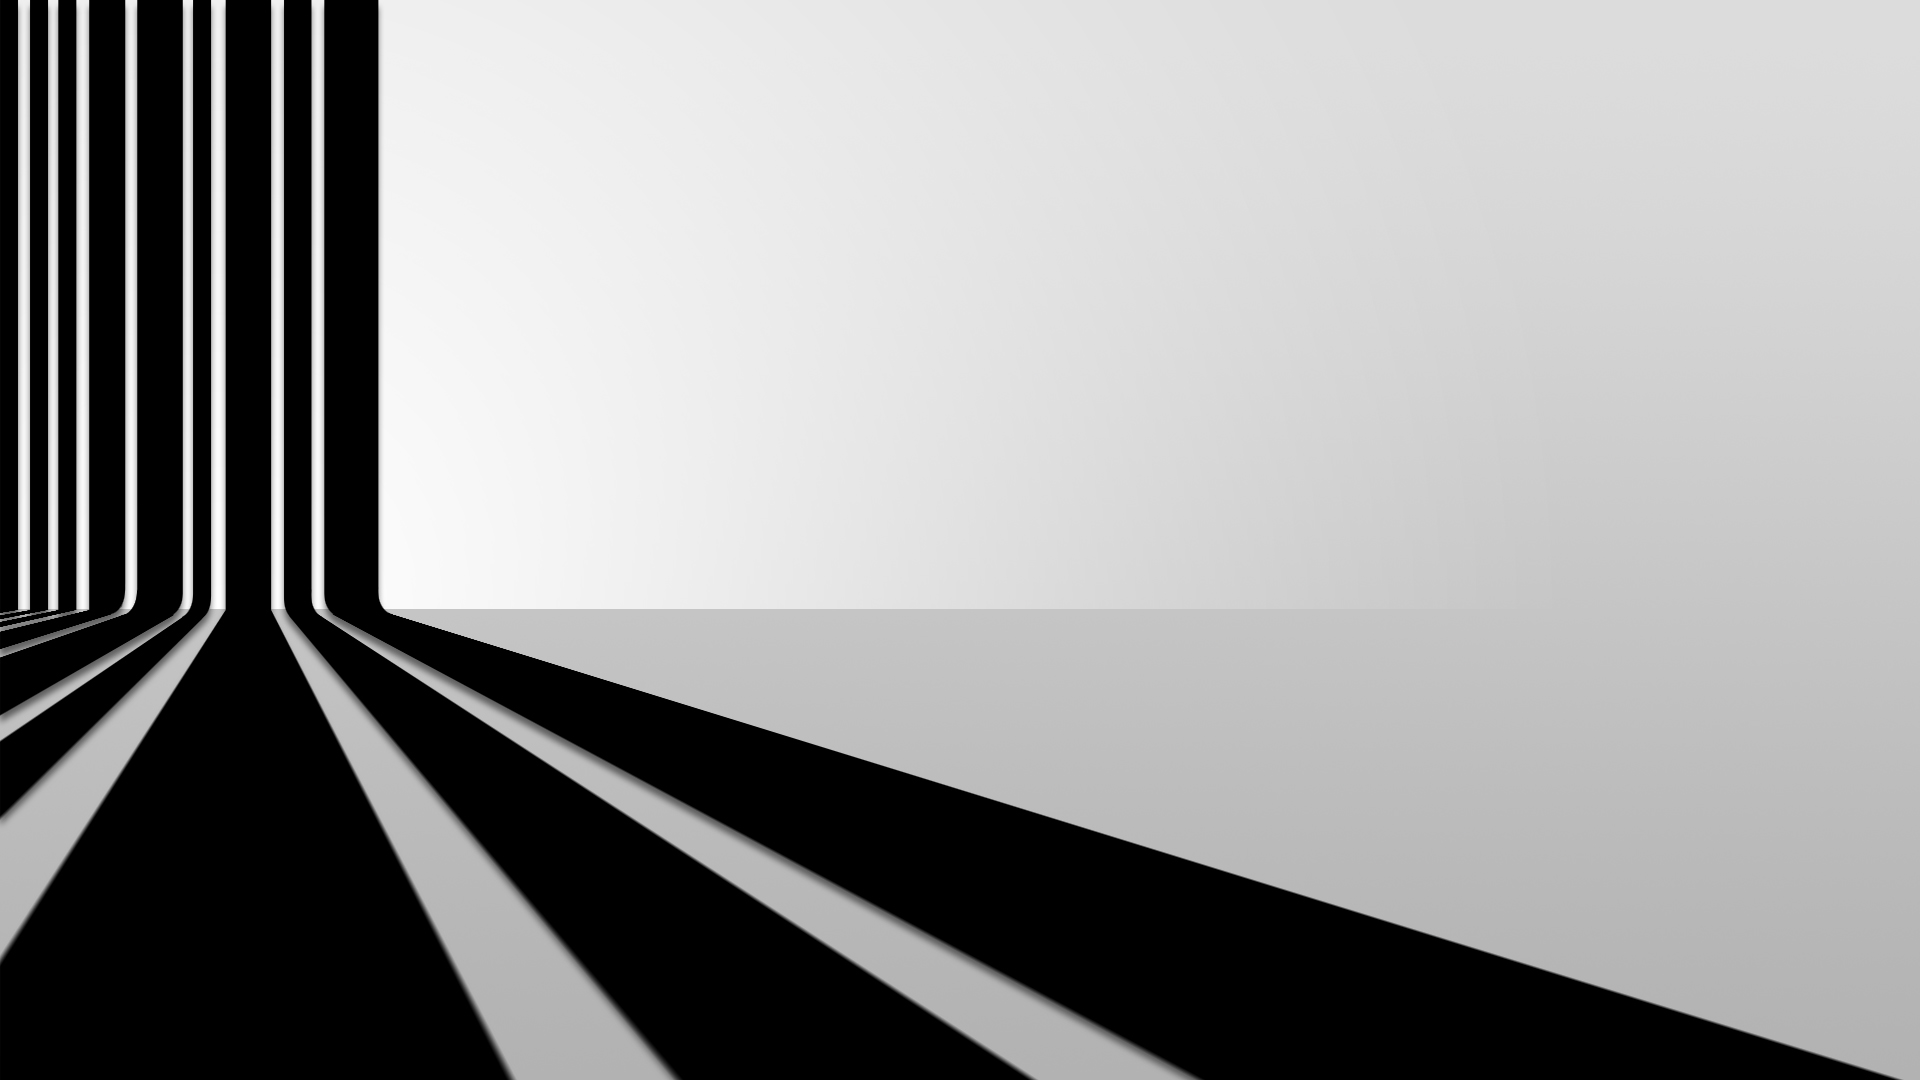 digital Black and White Backgrounds